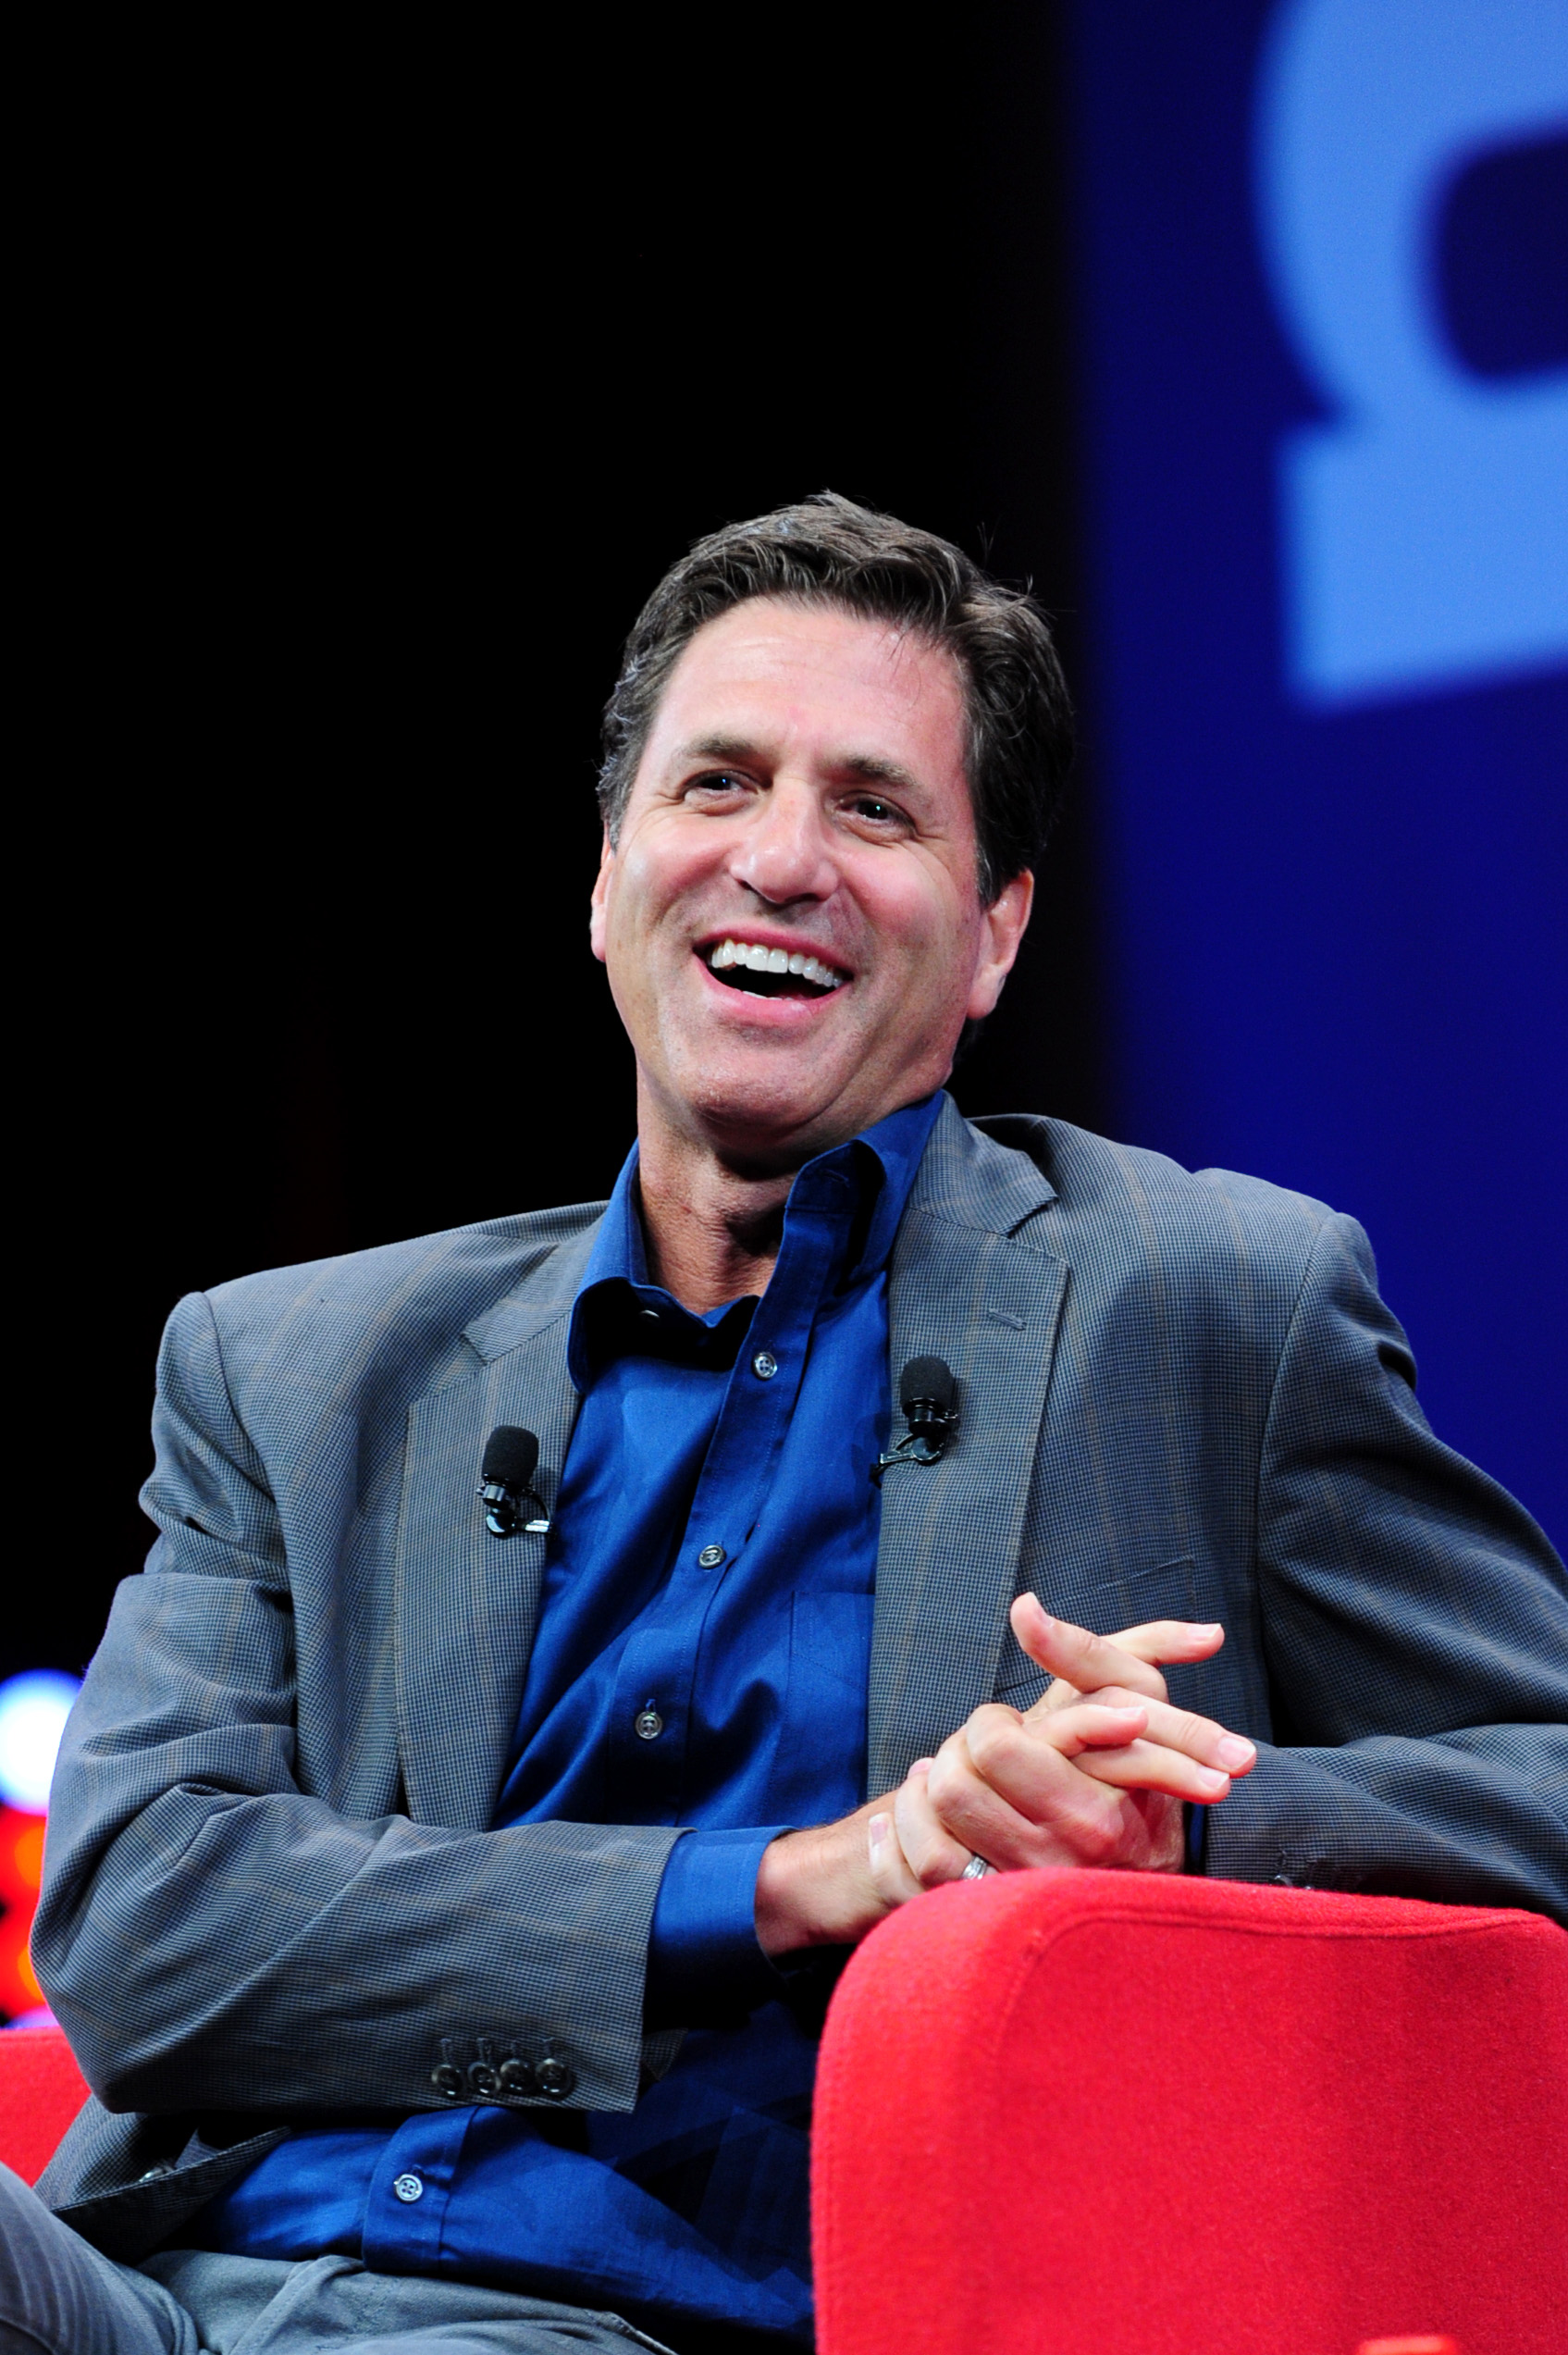 "MIPTV 2015 - CONFERENCES - DRAMA AT MIPTV - MEDIA MASTERMIND KEYNOTE - STEVEN LEVITAN / ""MODERN FAMILY"" CO-CREATOR AND EXECUTIVE PRODUCER INTERVIEWED BY ANNA CARUGATI / WORLD SCREEN"